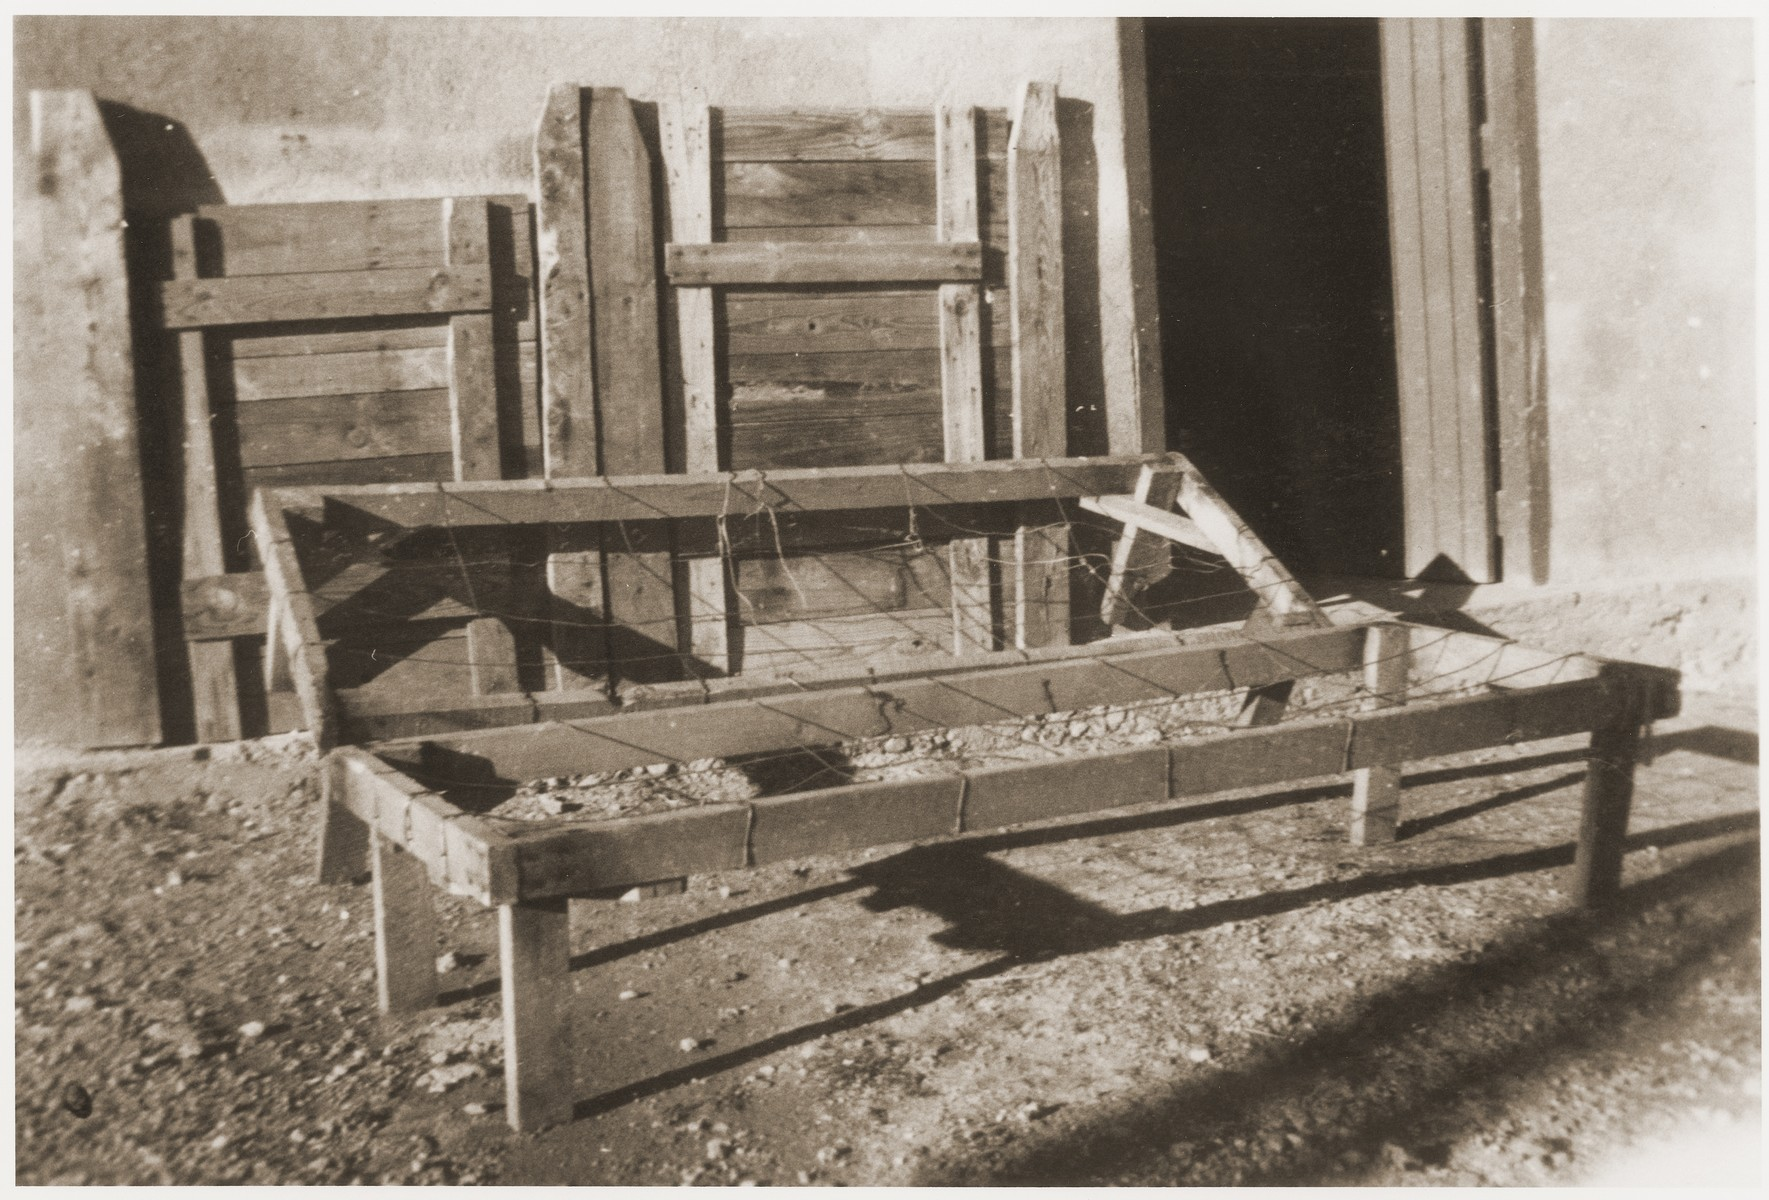 Primitive beds used in the Rivesaltes internment camp.